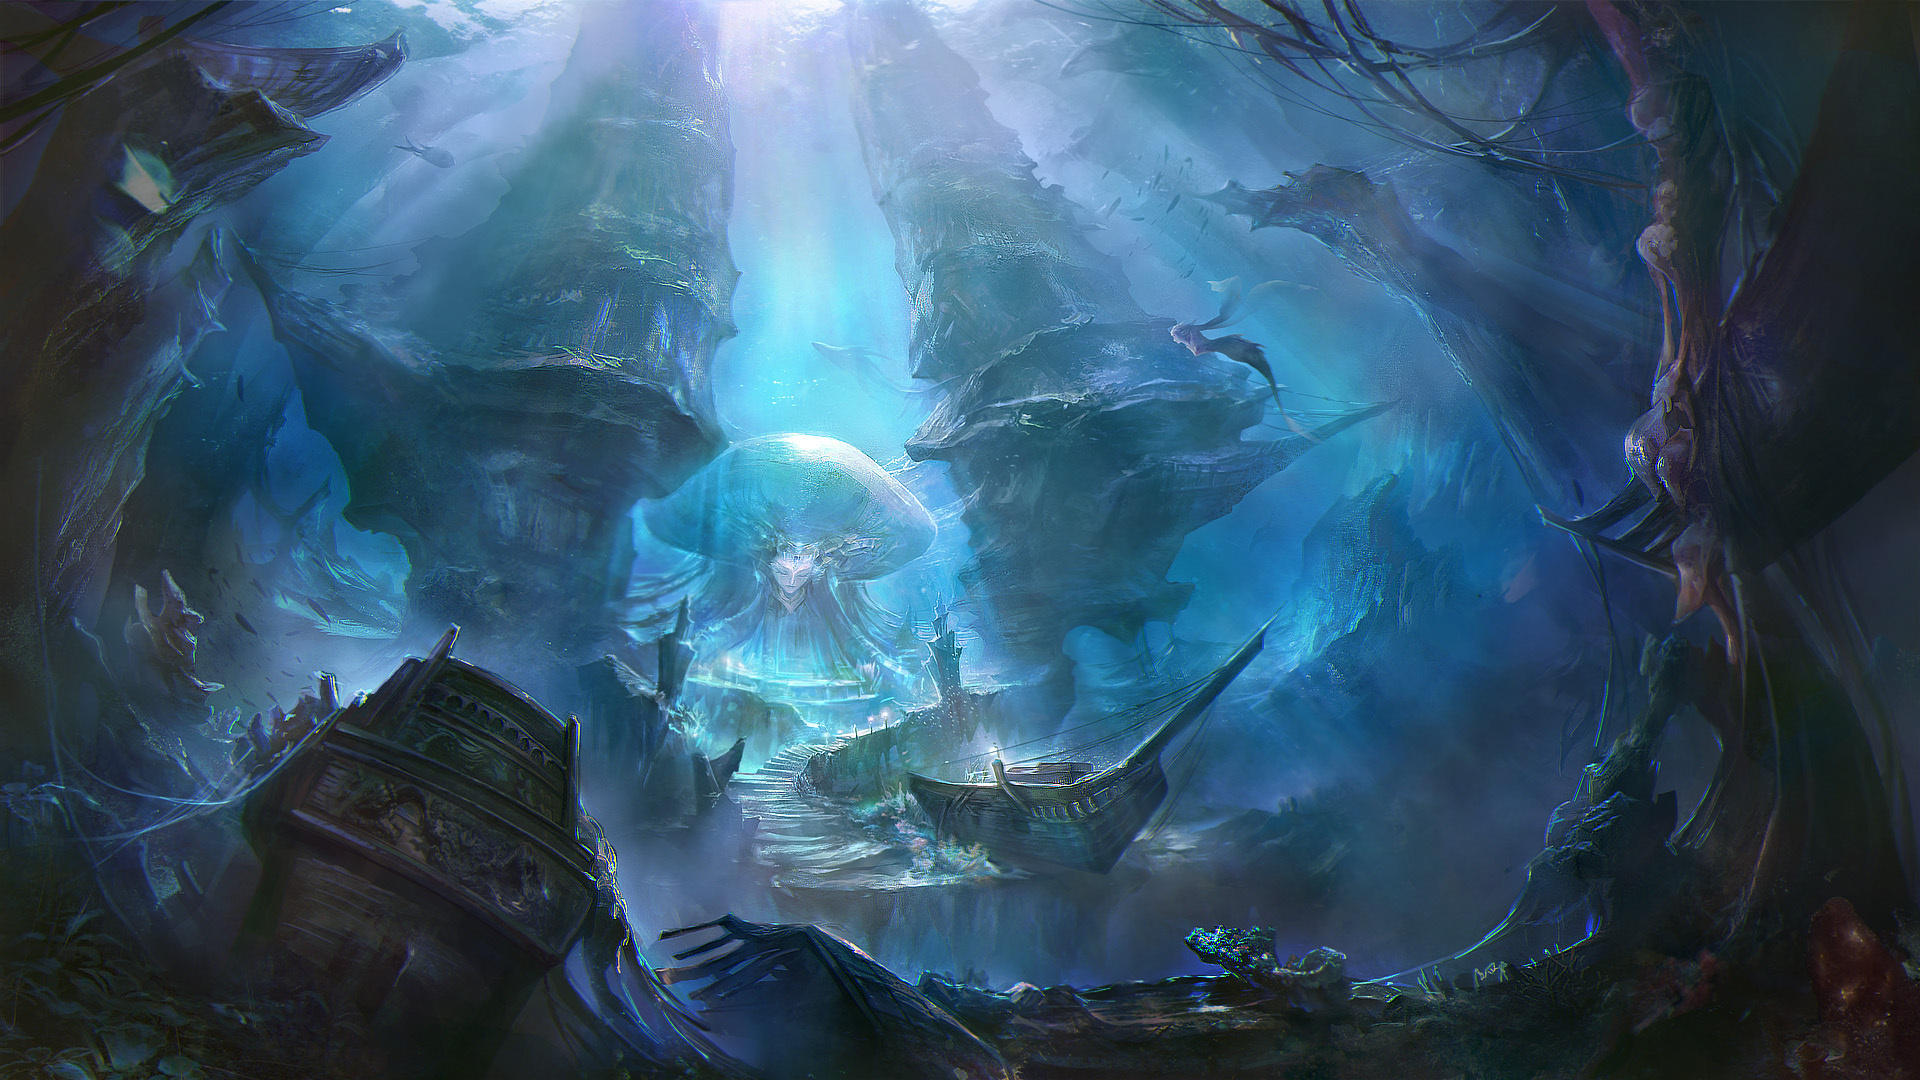 Realm of the mermaid goddess full hd wallpaper and